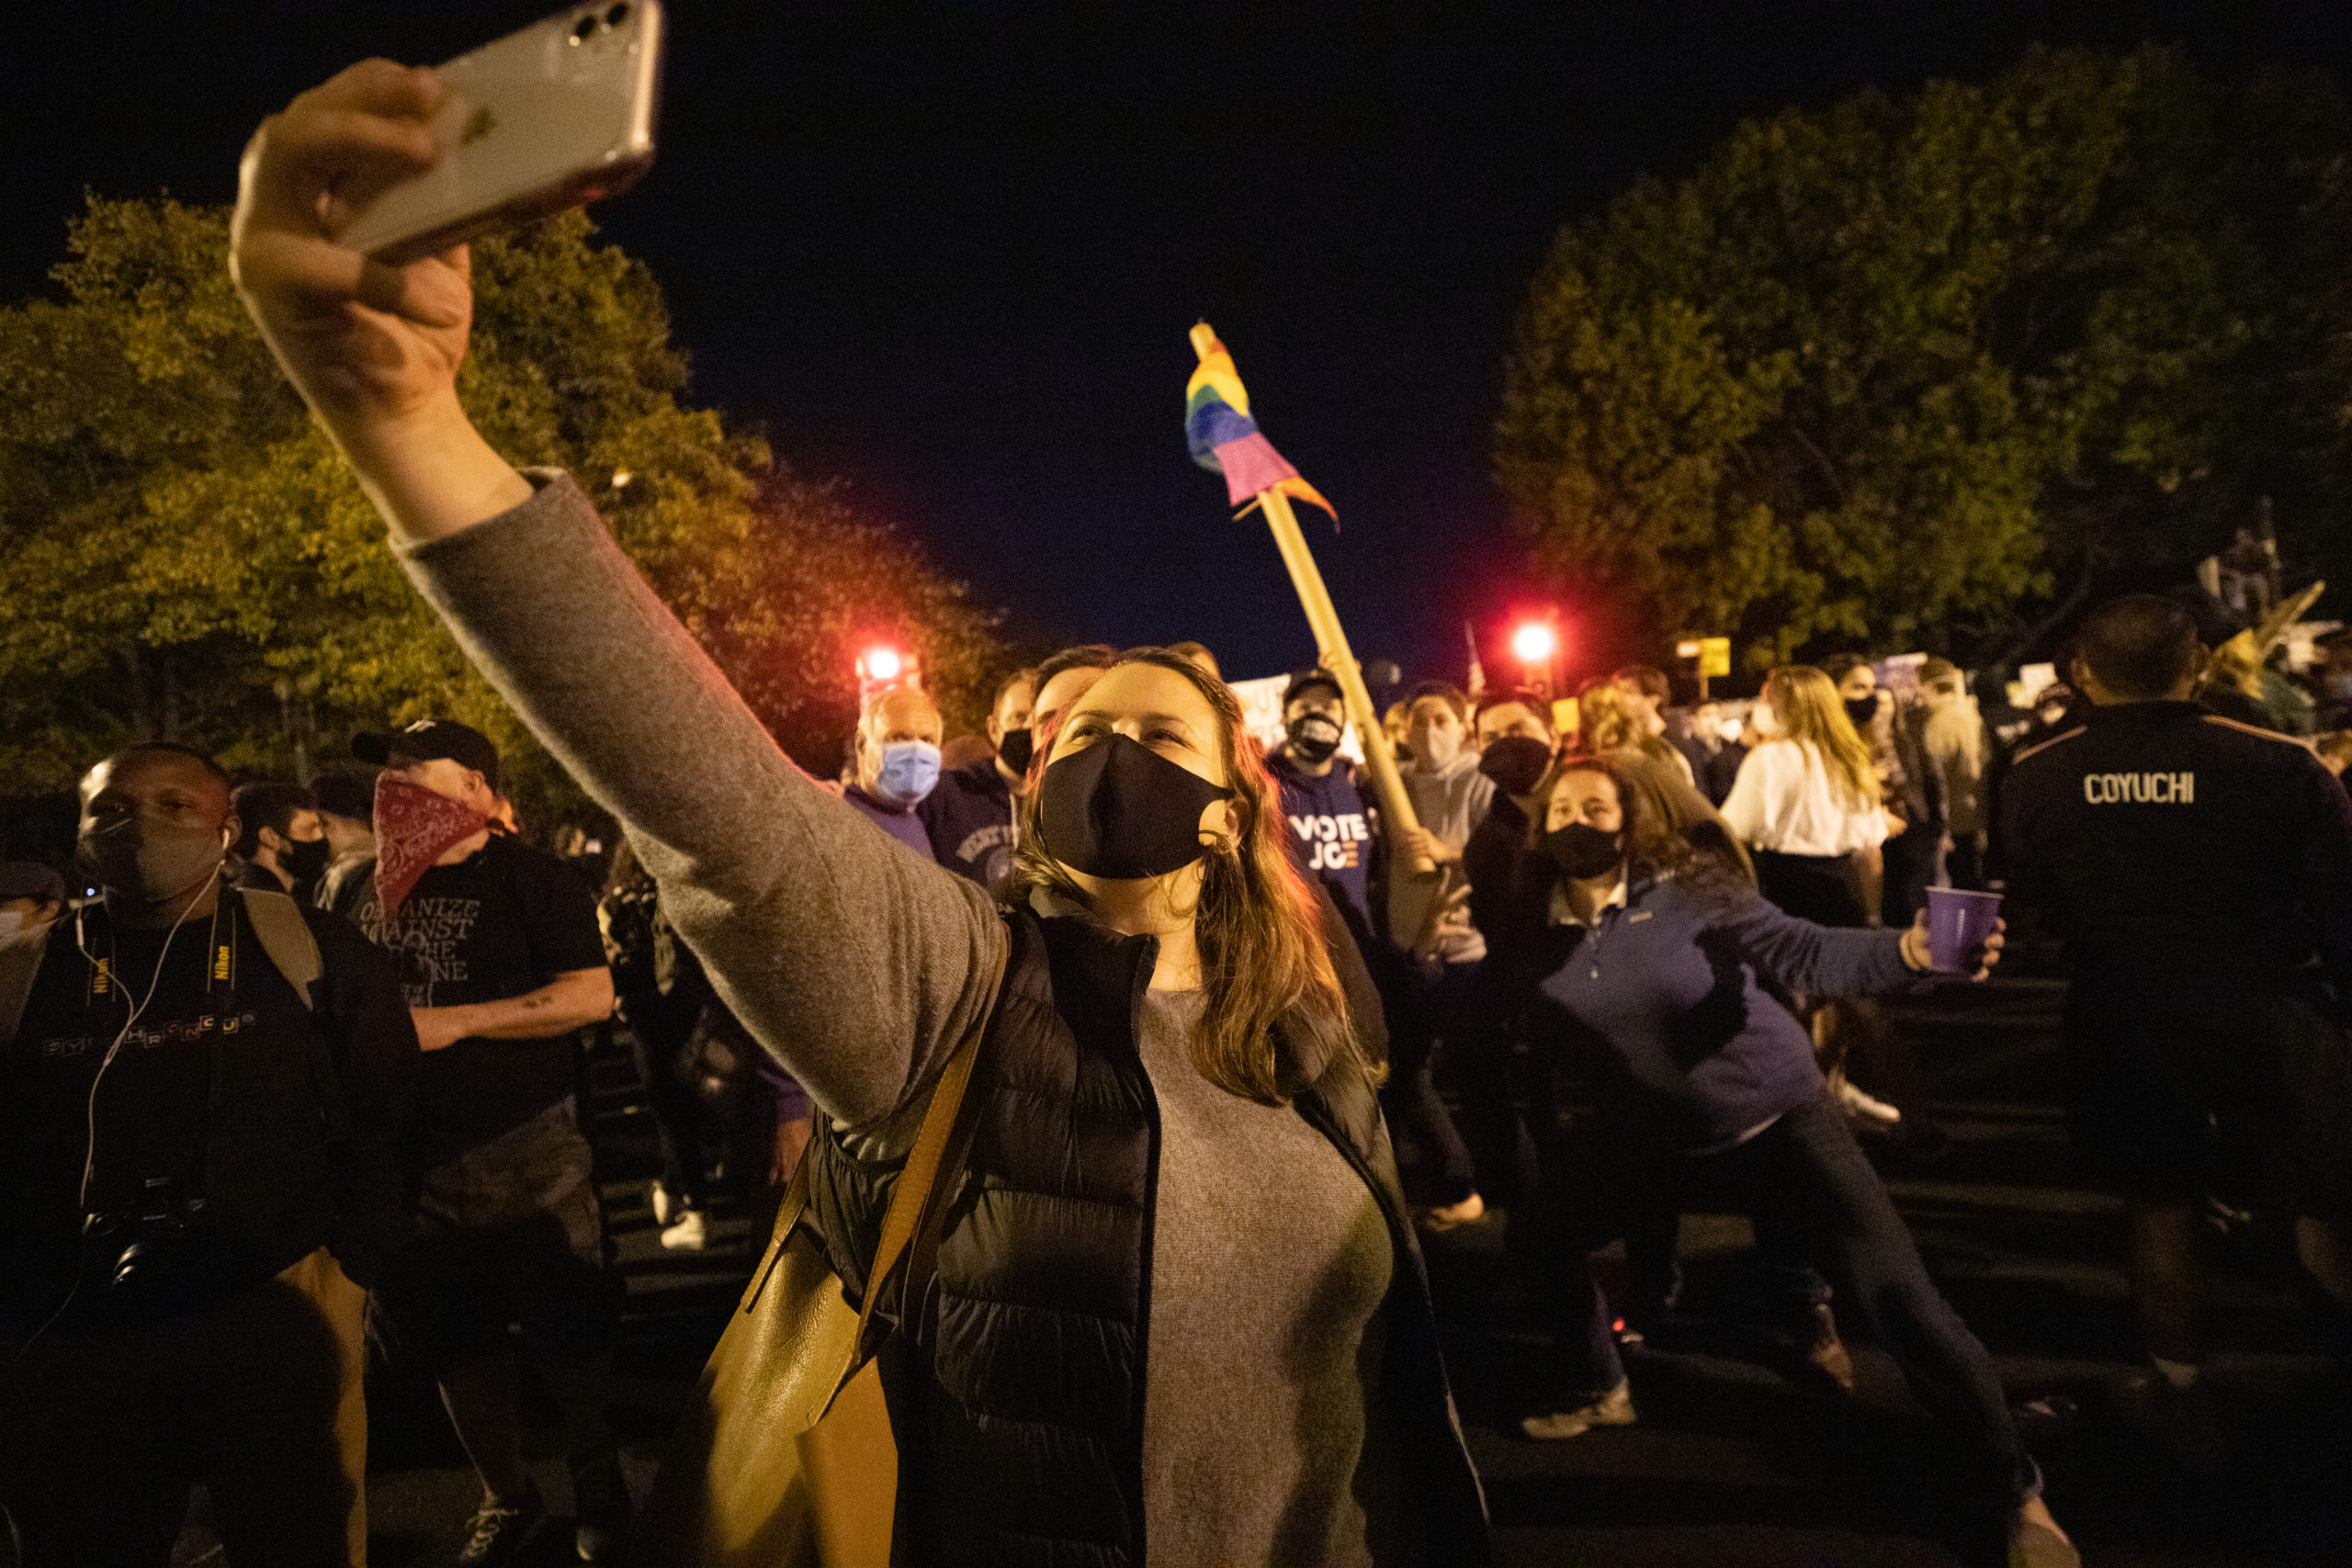 Several people gathered at Black Lives Matter Plaza on Saturday night to celebrate the predicted election of Democratic nominee Joe Biden and Kamala Harris, in Washington D.C. on Nov. 7, 2020. (Kaylee Greenlee - Daily Caller News Foundation)